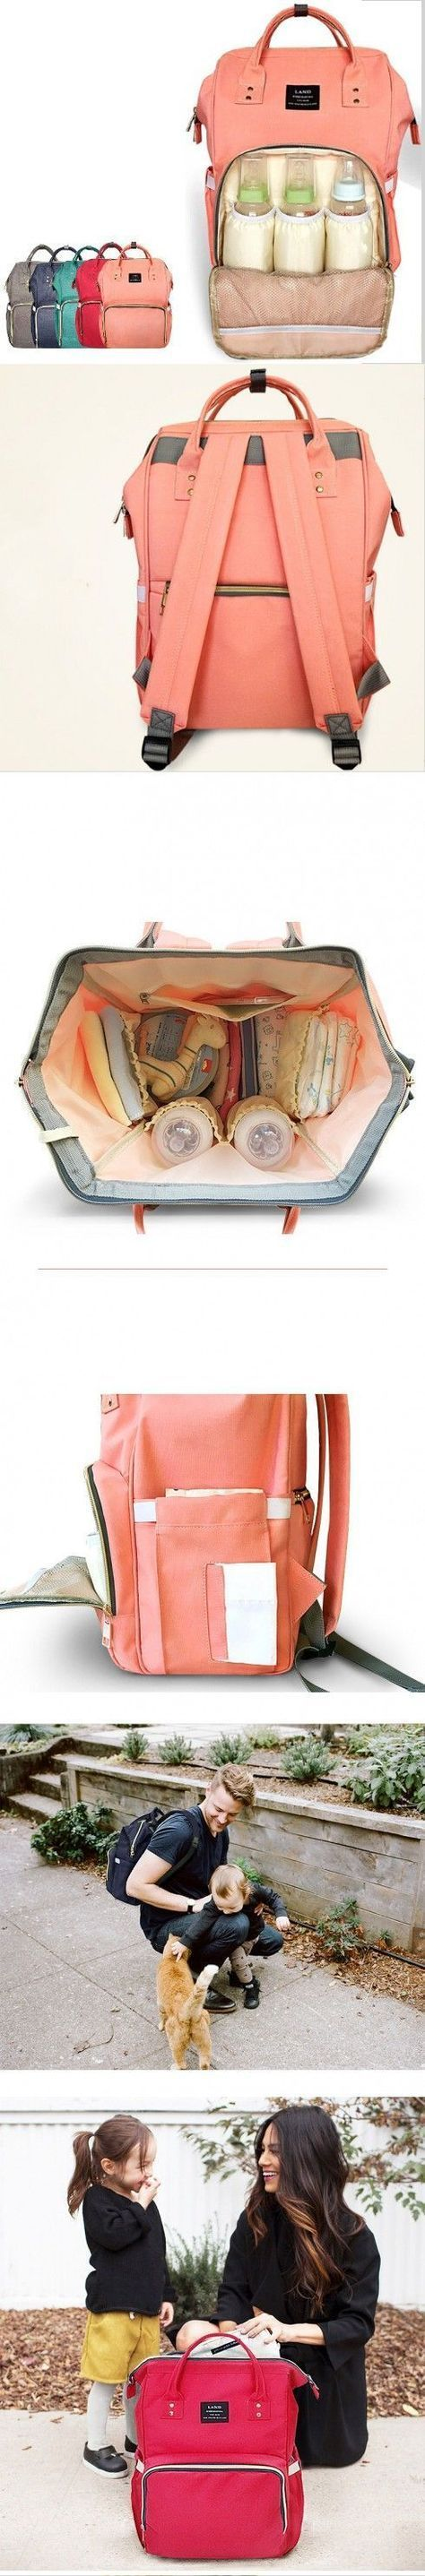 This fashionable backpack diaper bag is perfect for mom and baby. Comes in stylish colors from coral pink to classic black - https://mommababygear.com/products/fashionable-travel-backpack-for-baby-care